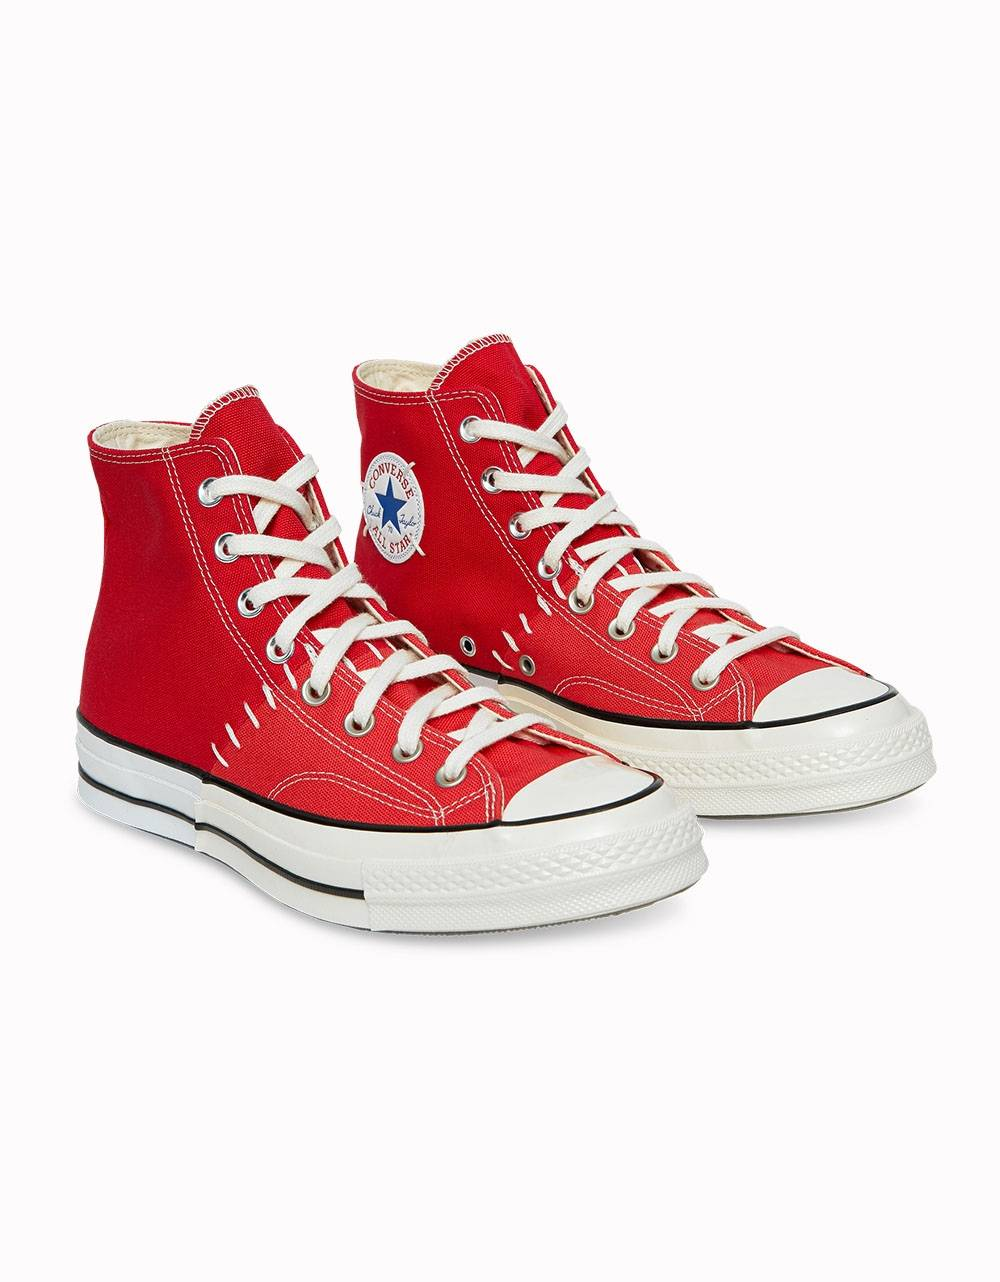 Converse Woman Chuck Taylor 70 Recostructed High ltd - red/sedona red/egret Converse Sneakers 142,00€